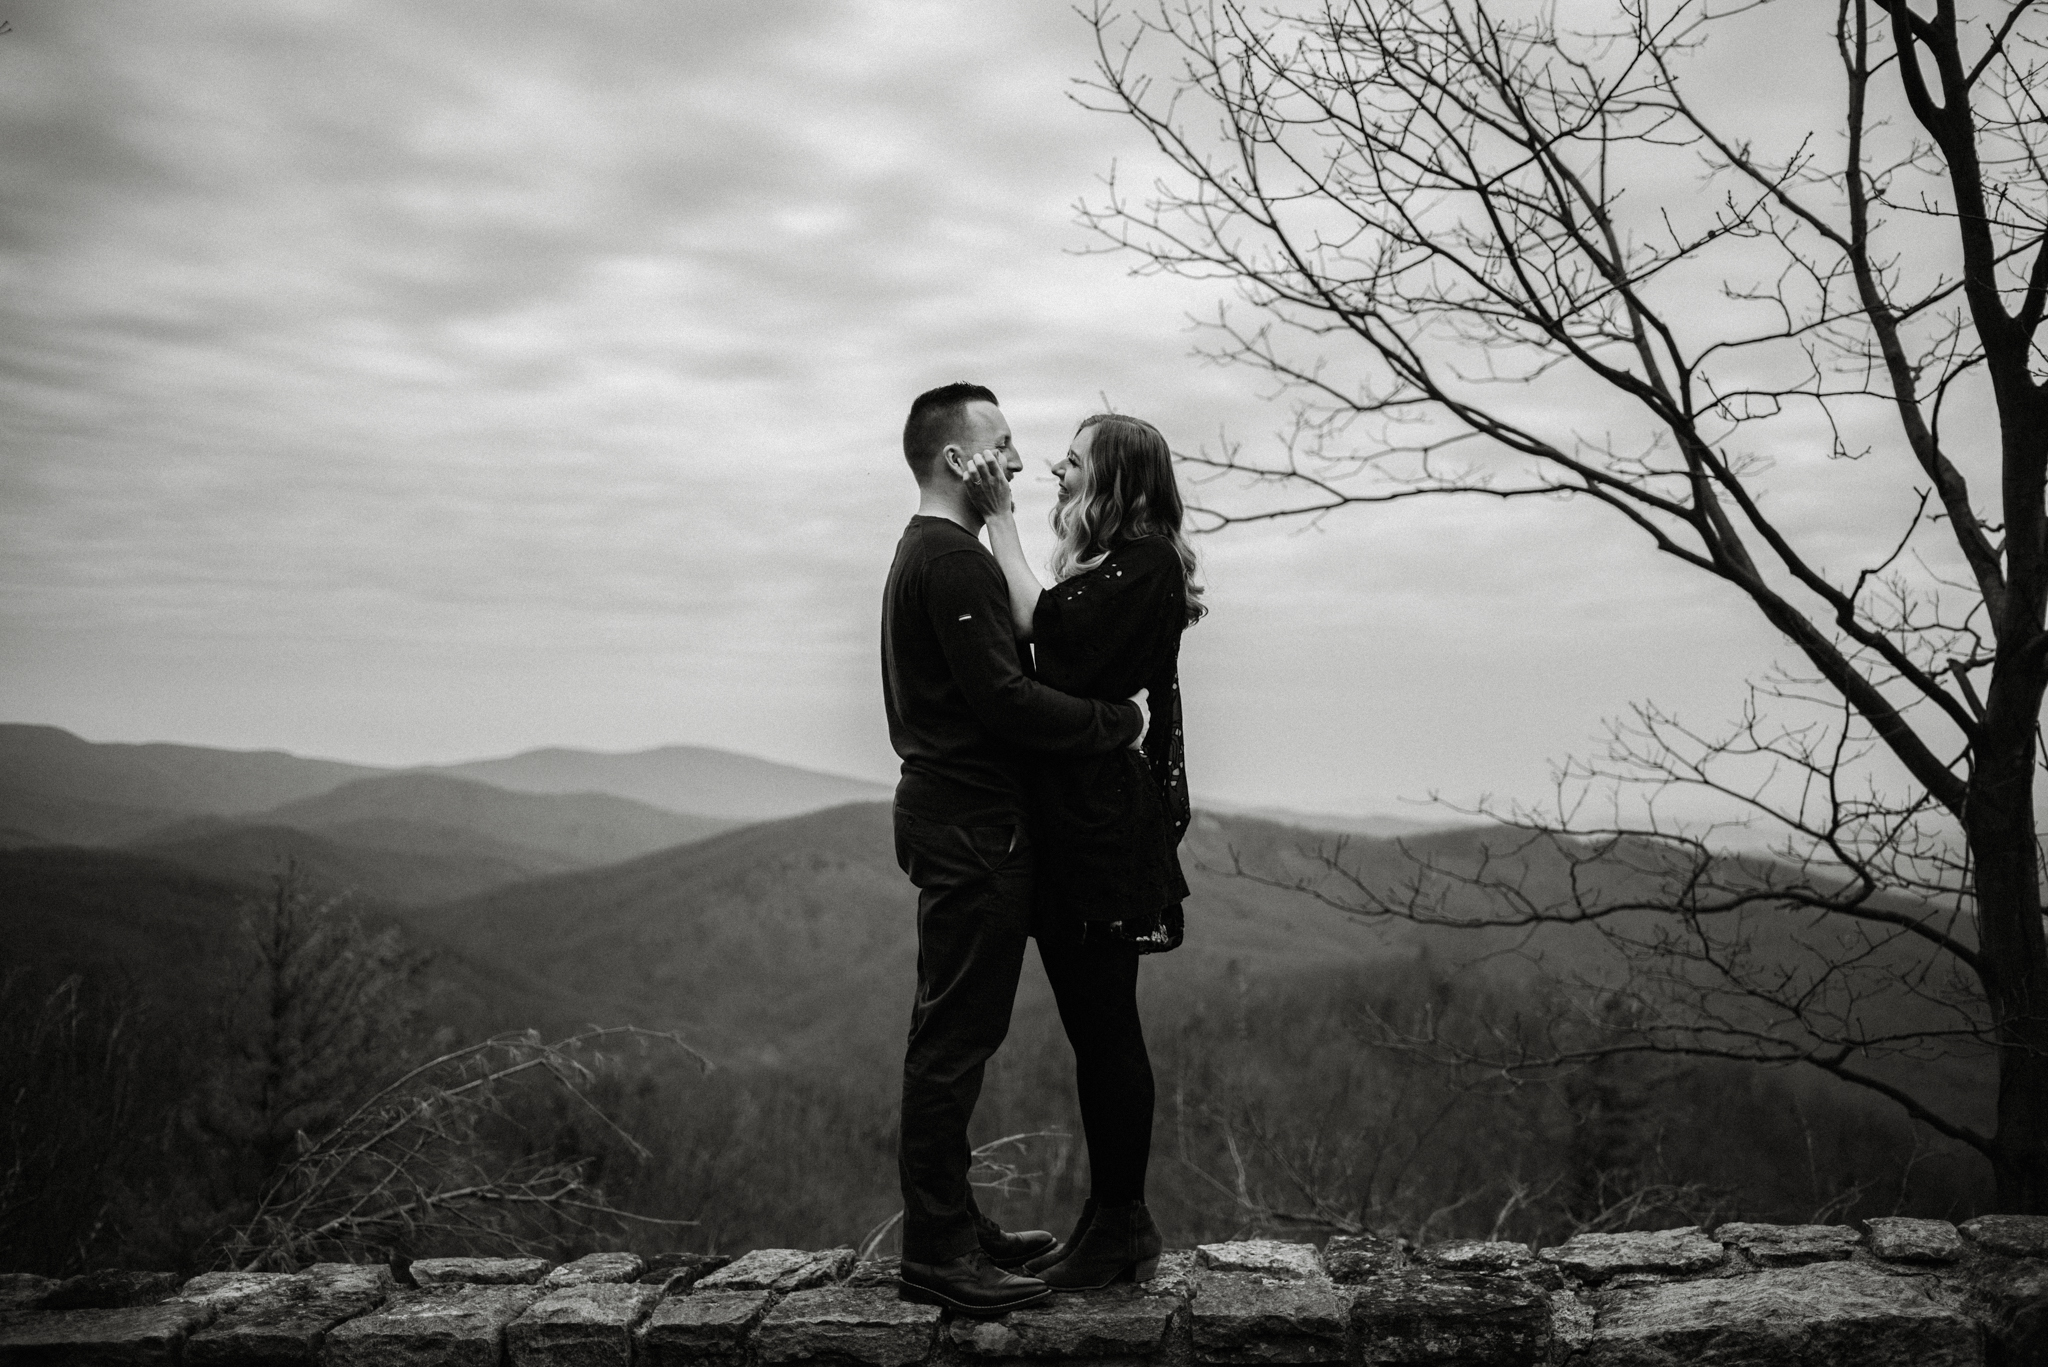 Nicole and Victor - Shenandoah National Park Engagement Photography - Blue Ridge Mountains Adventure Photography - White Sails Creative Photography.jpg